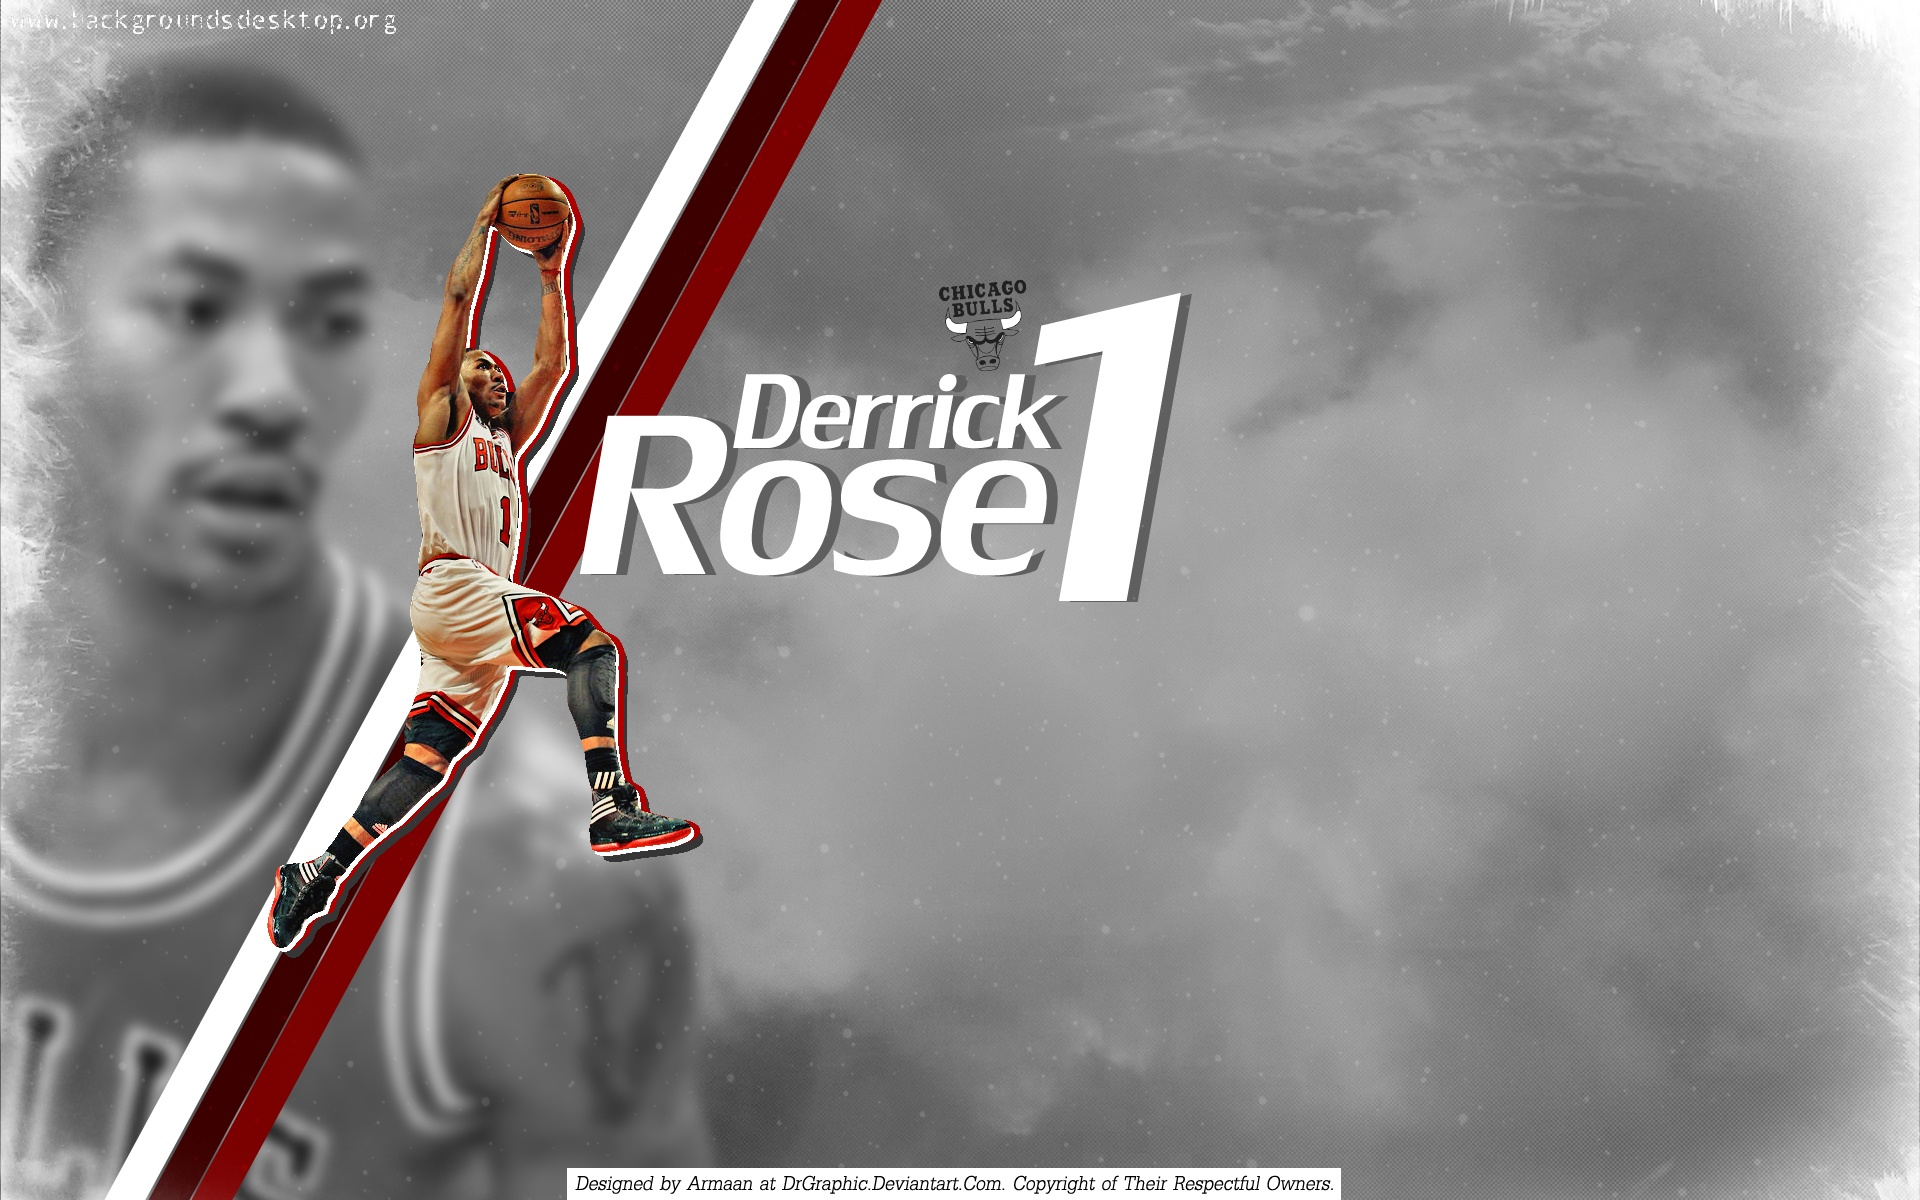 Derrick Rose Number 1 Players 17689 Hi-Resolution